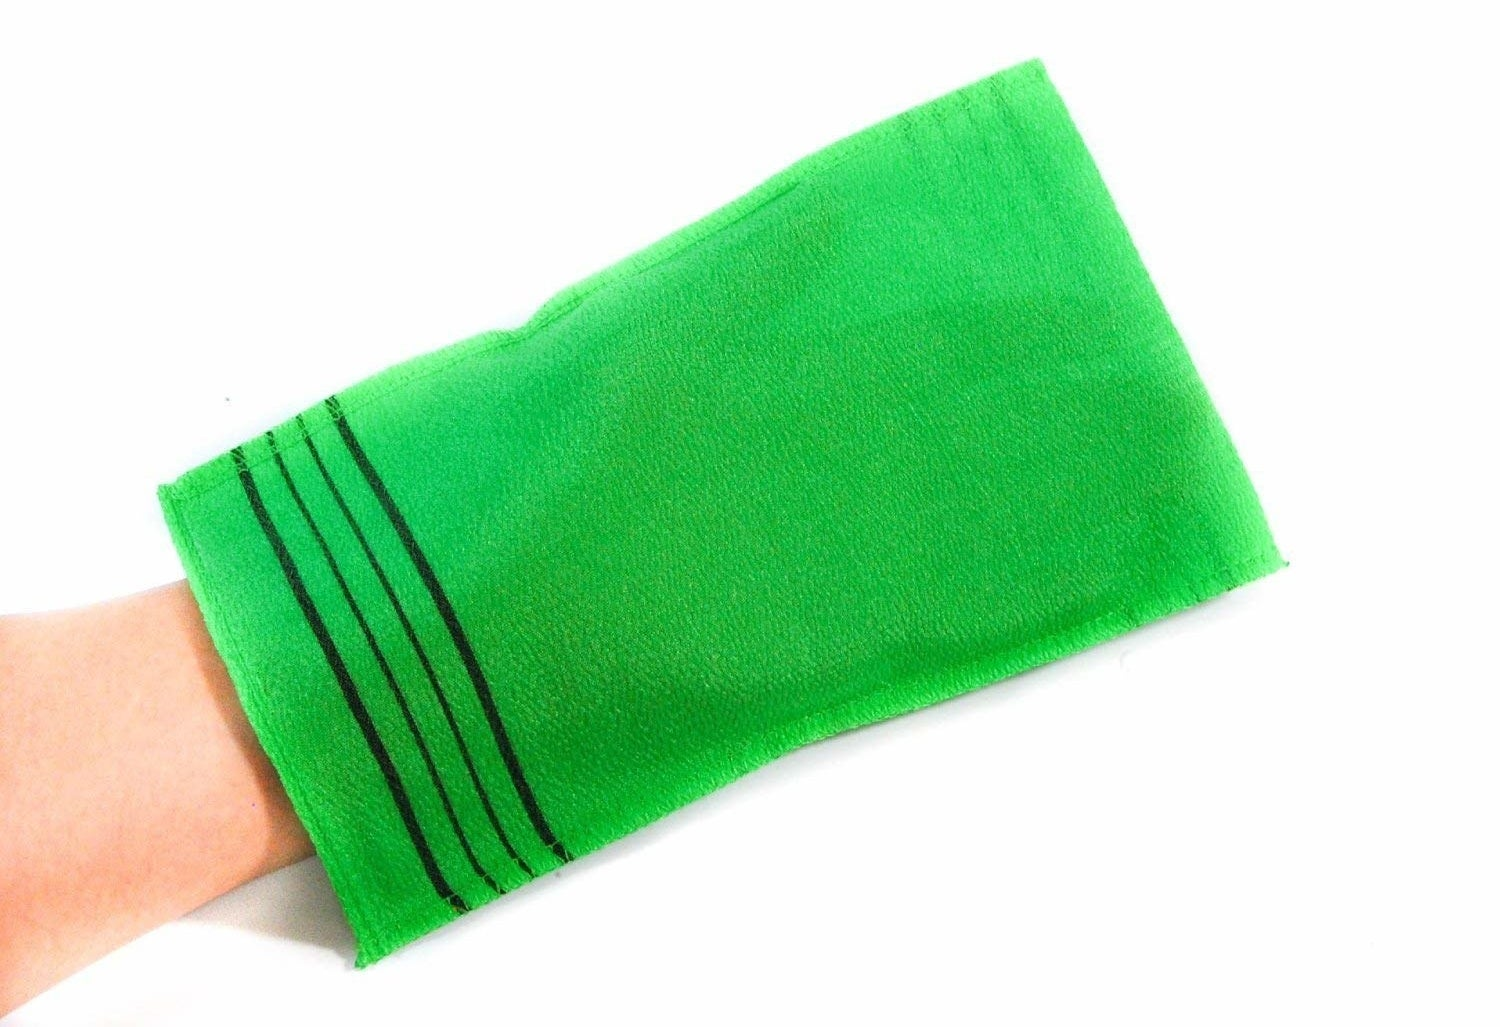 green washcloth on a hand